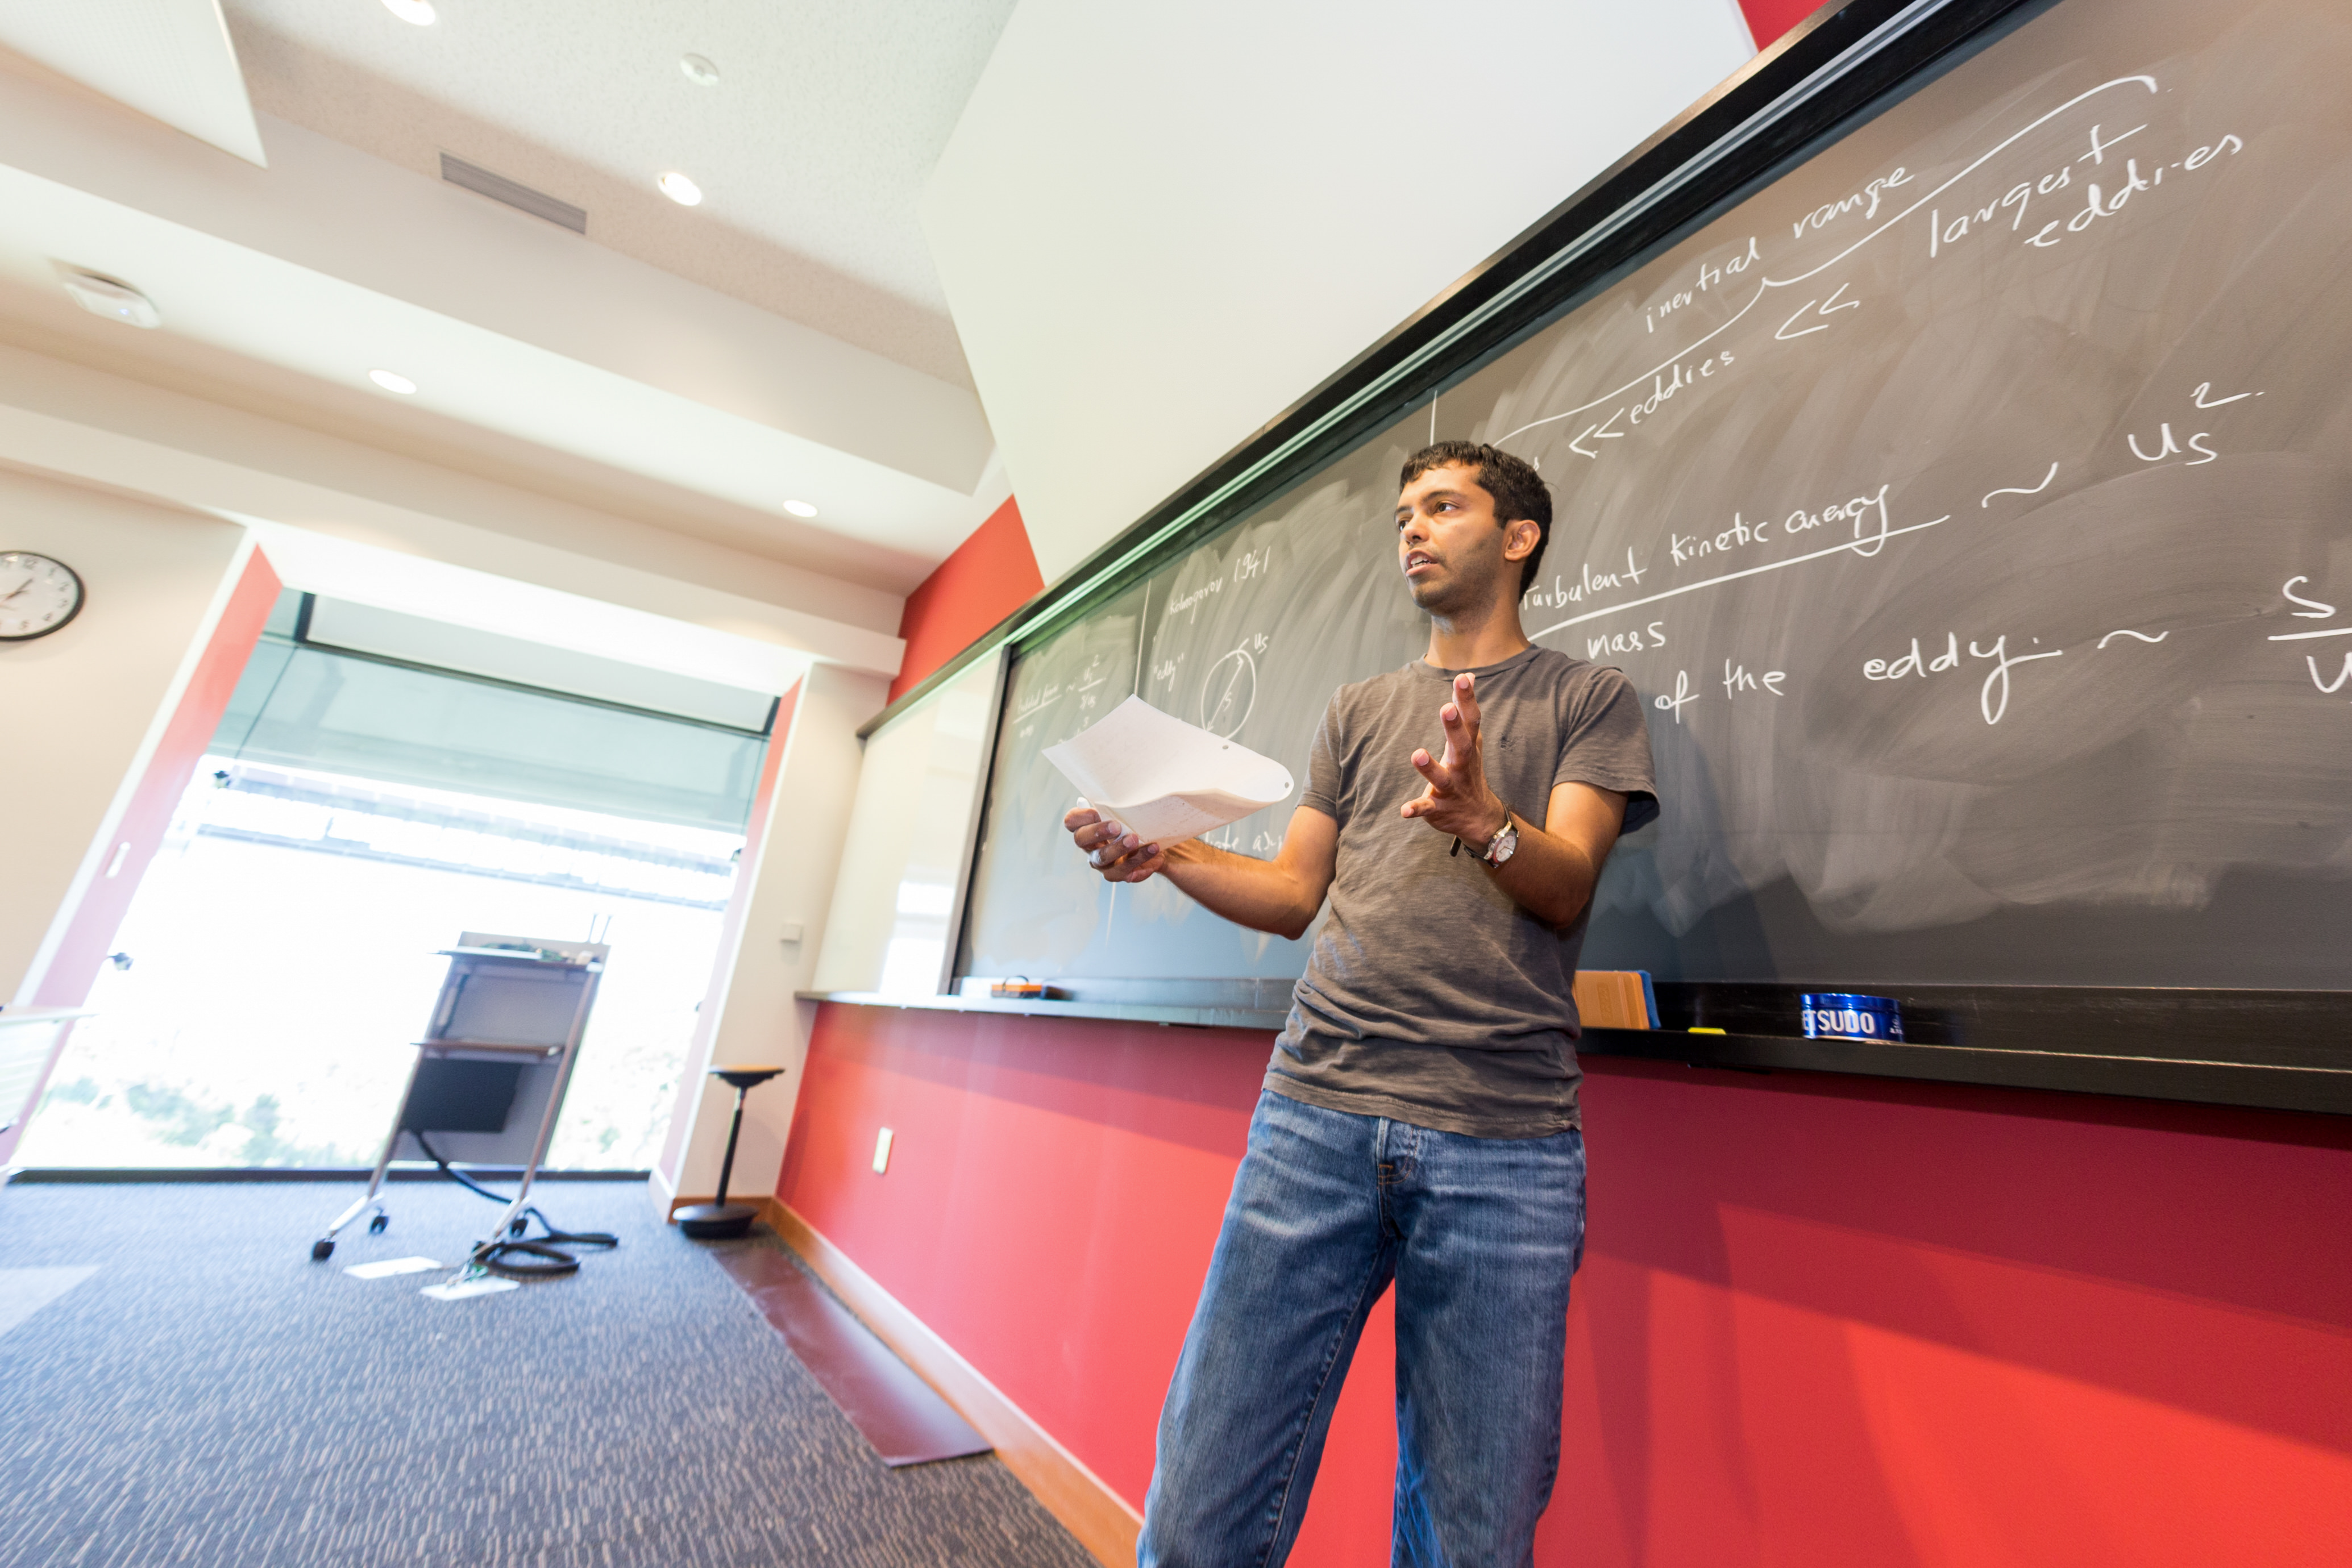 Professor Chakraborty teaches a class for graduate students